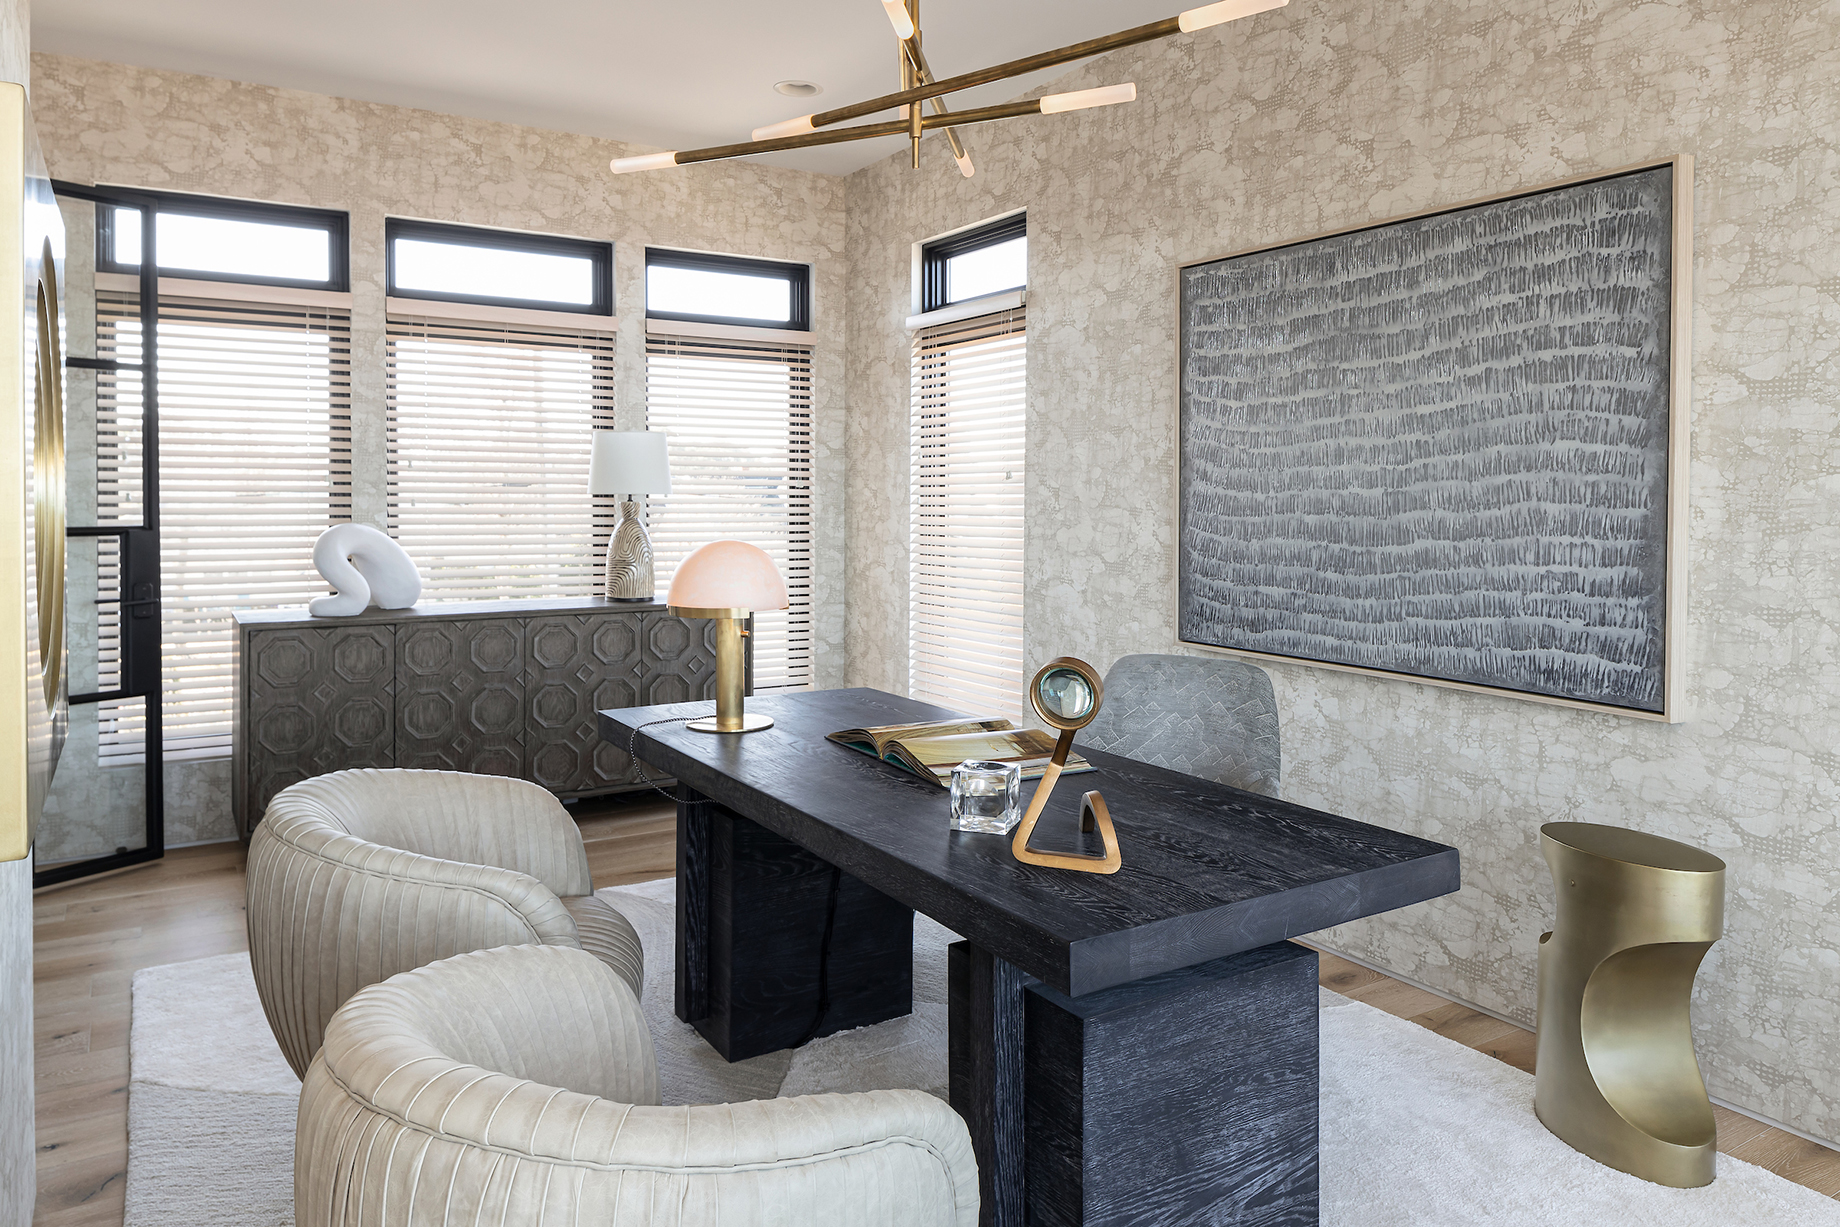 Modern luxe office in Virginia Beach home designed by Kenneth Byrd shot by Quentin Penn Hollar for Virginia Living Magazine